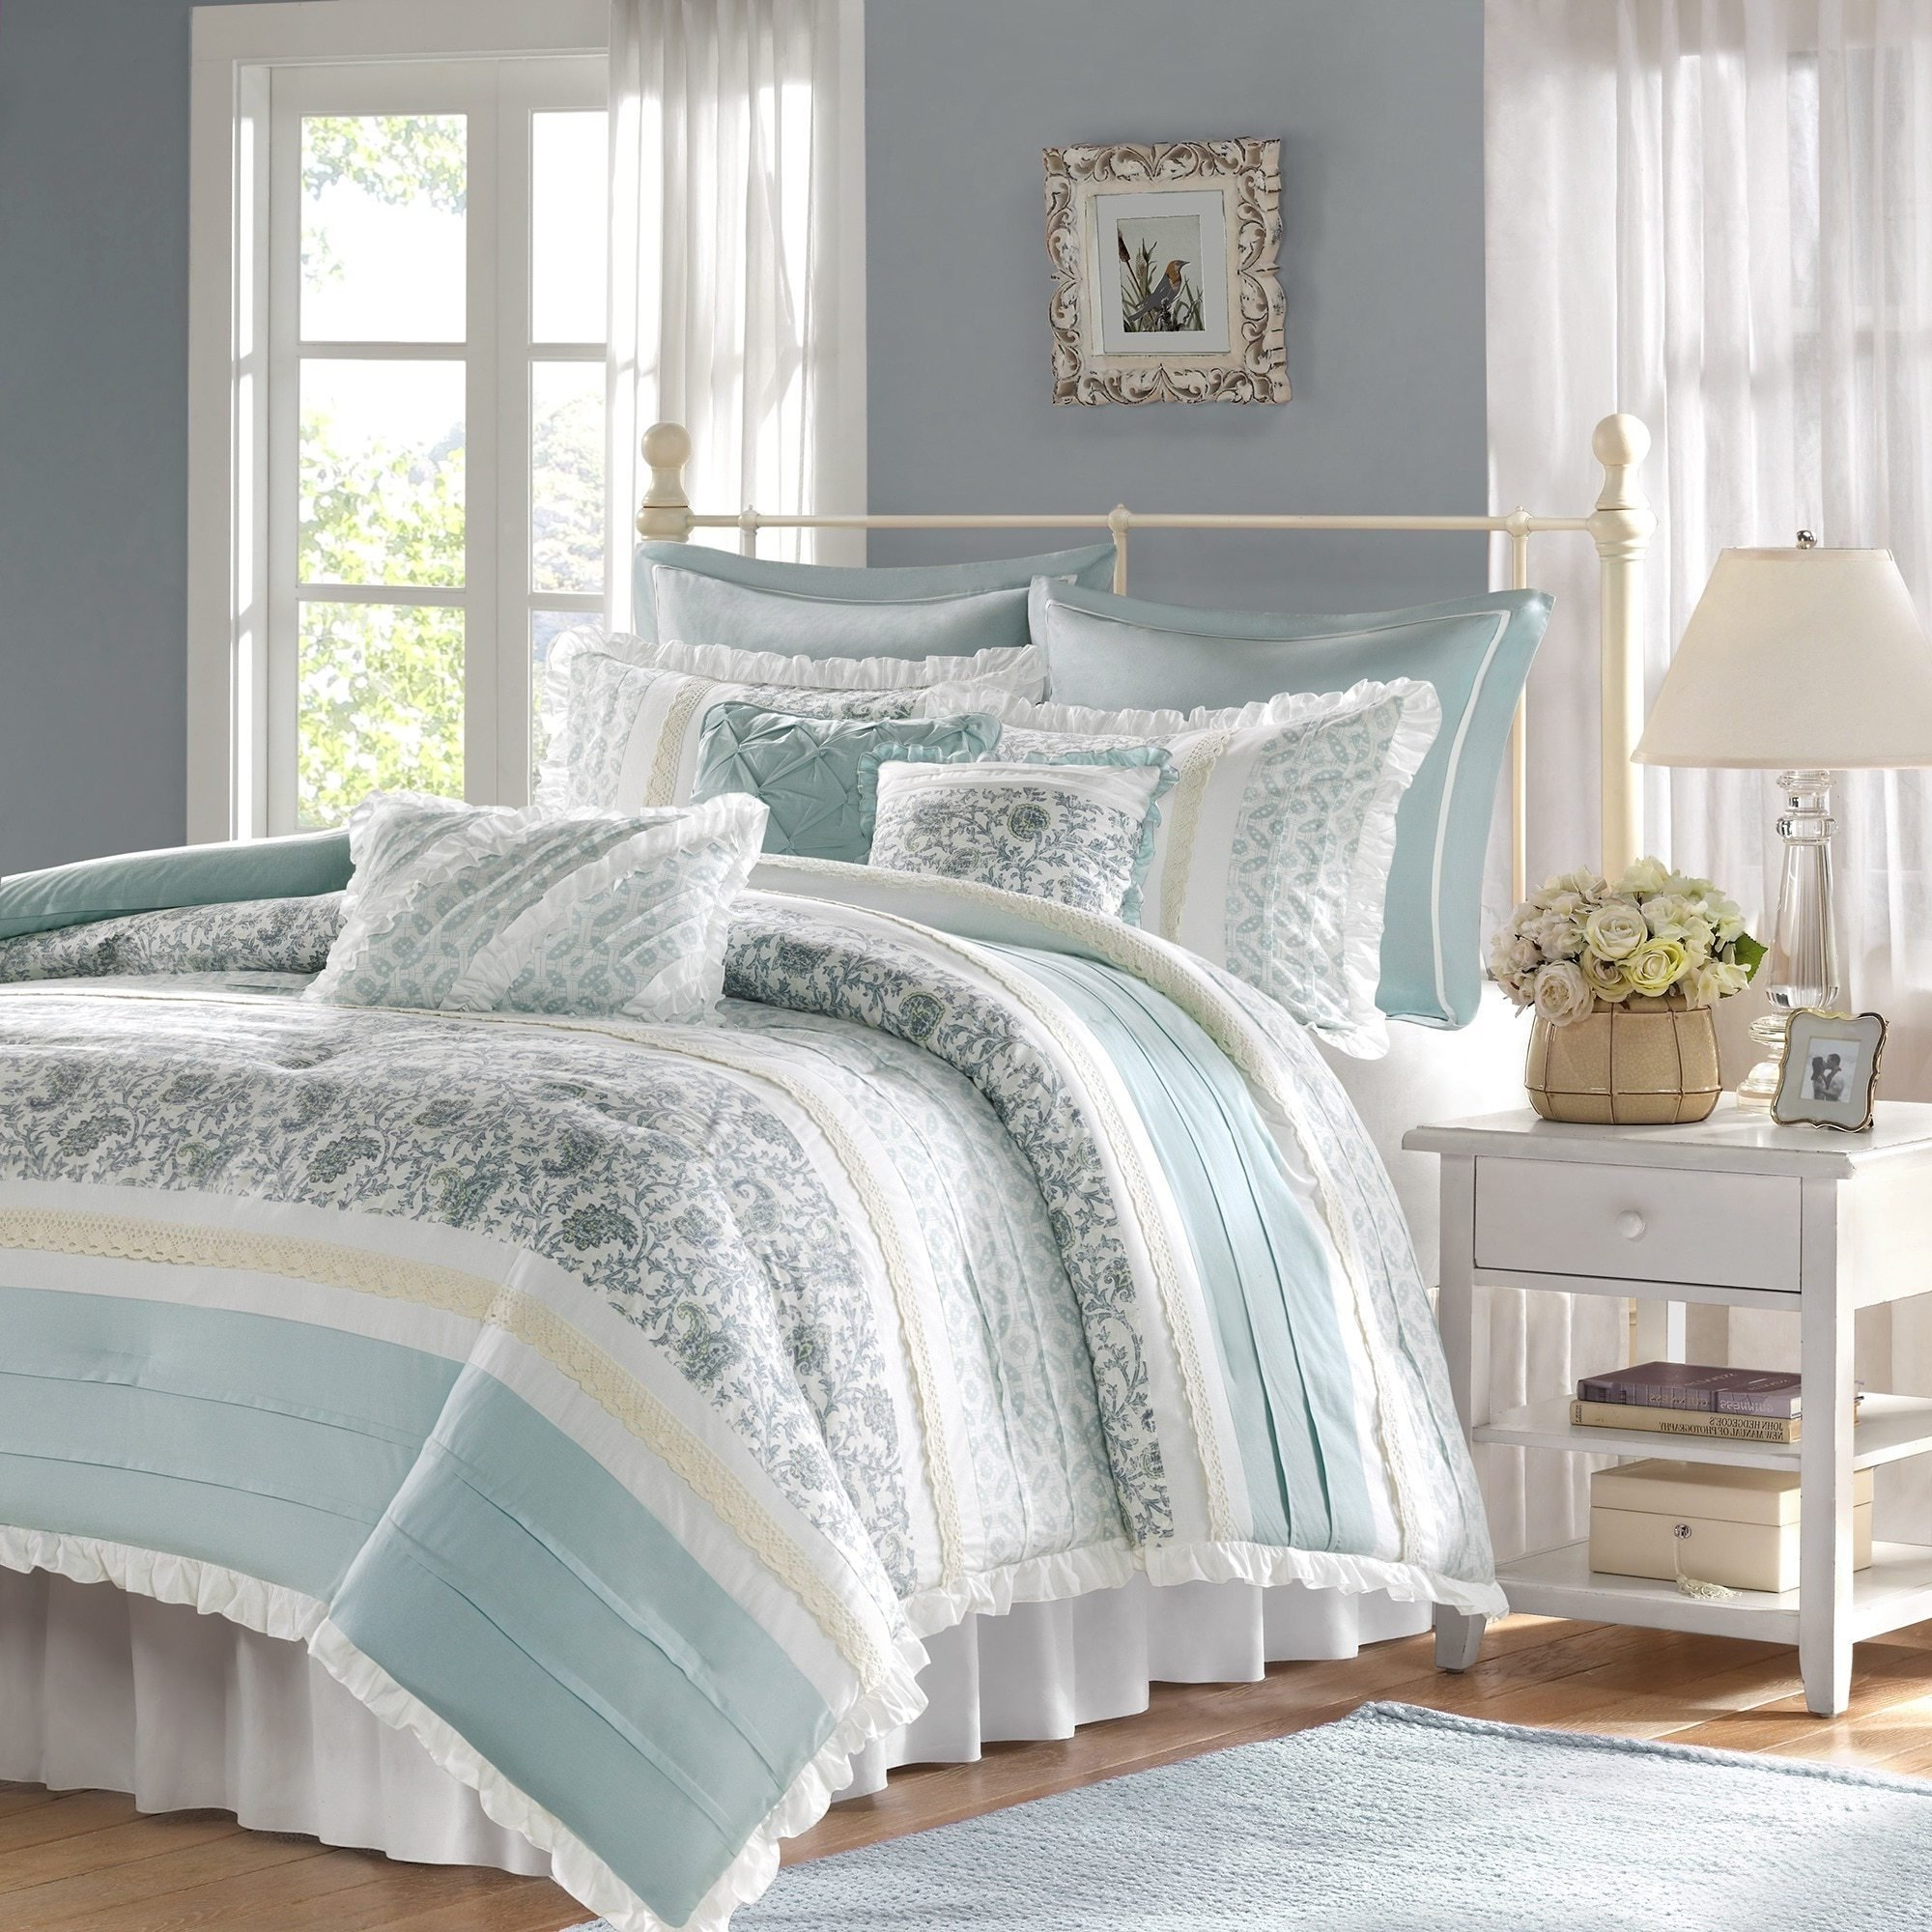 D&H 9 Piece Periwinkle Blue Green Paisley Comforter Queen Set, Blue White Shabby Chic Adult Bedding Master Bedroom Stylish Pintuck Ruffled Pattern Ruched Elegant Traditional Cotton Polyester